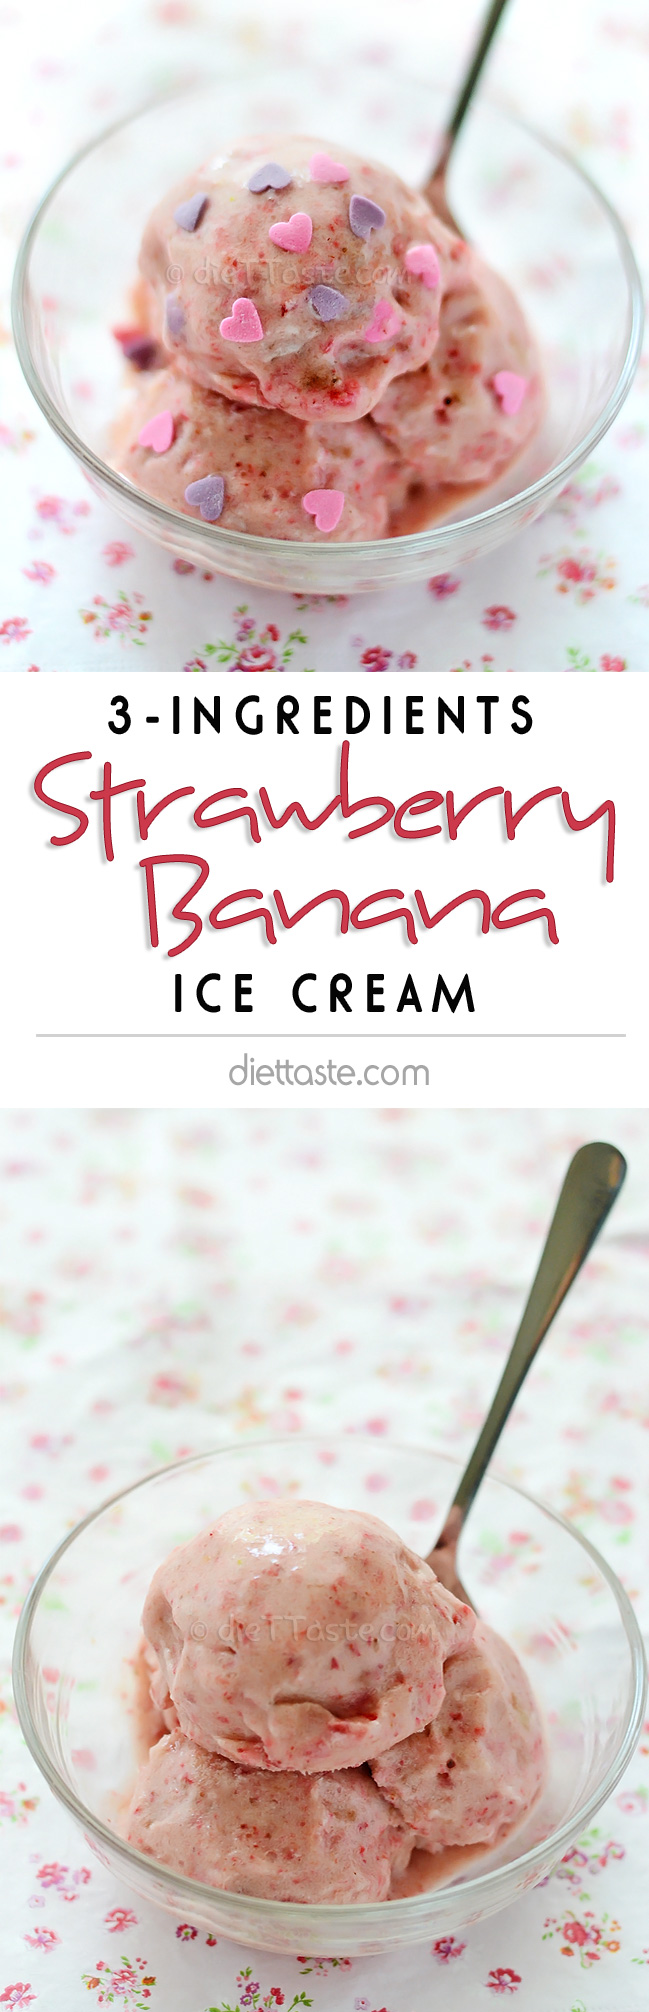 Strawberry Banana Ice Cream - diettaste.com